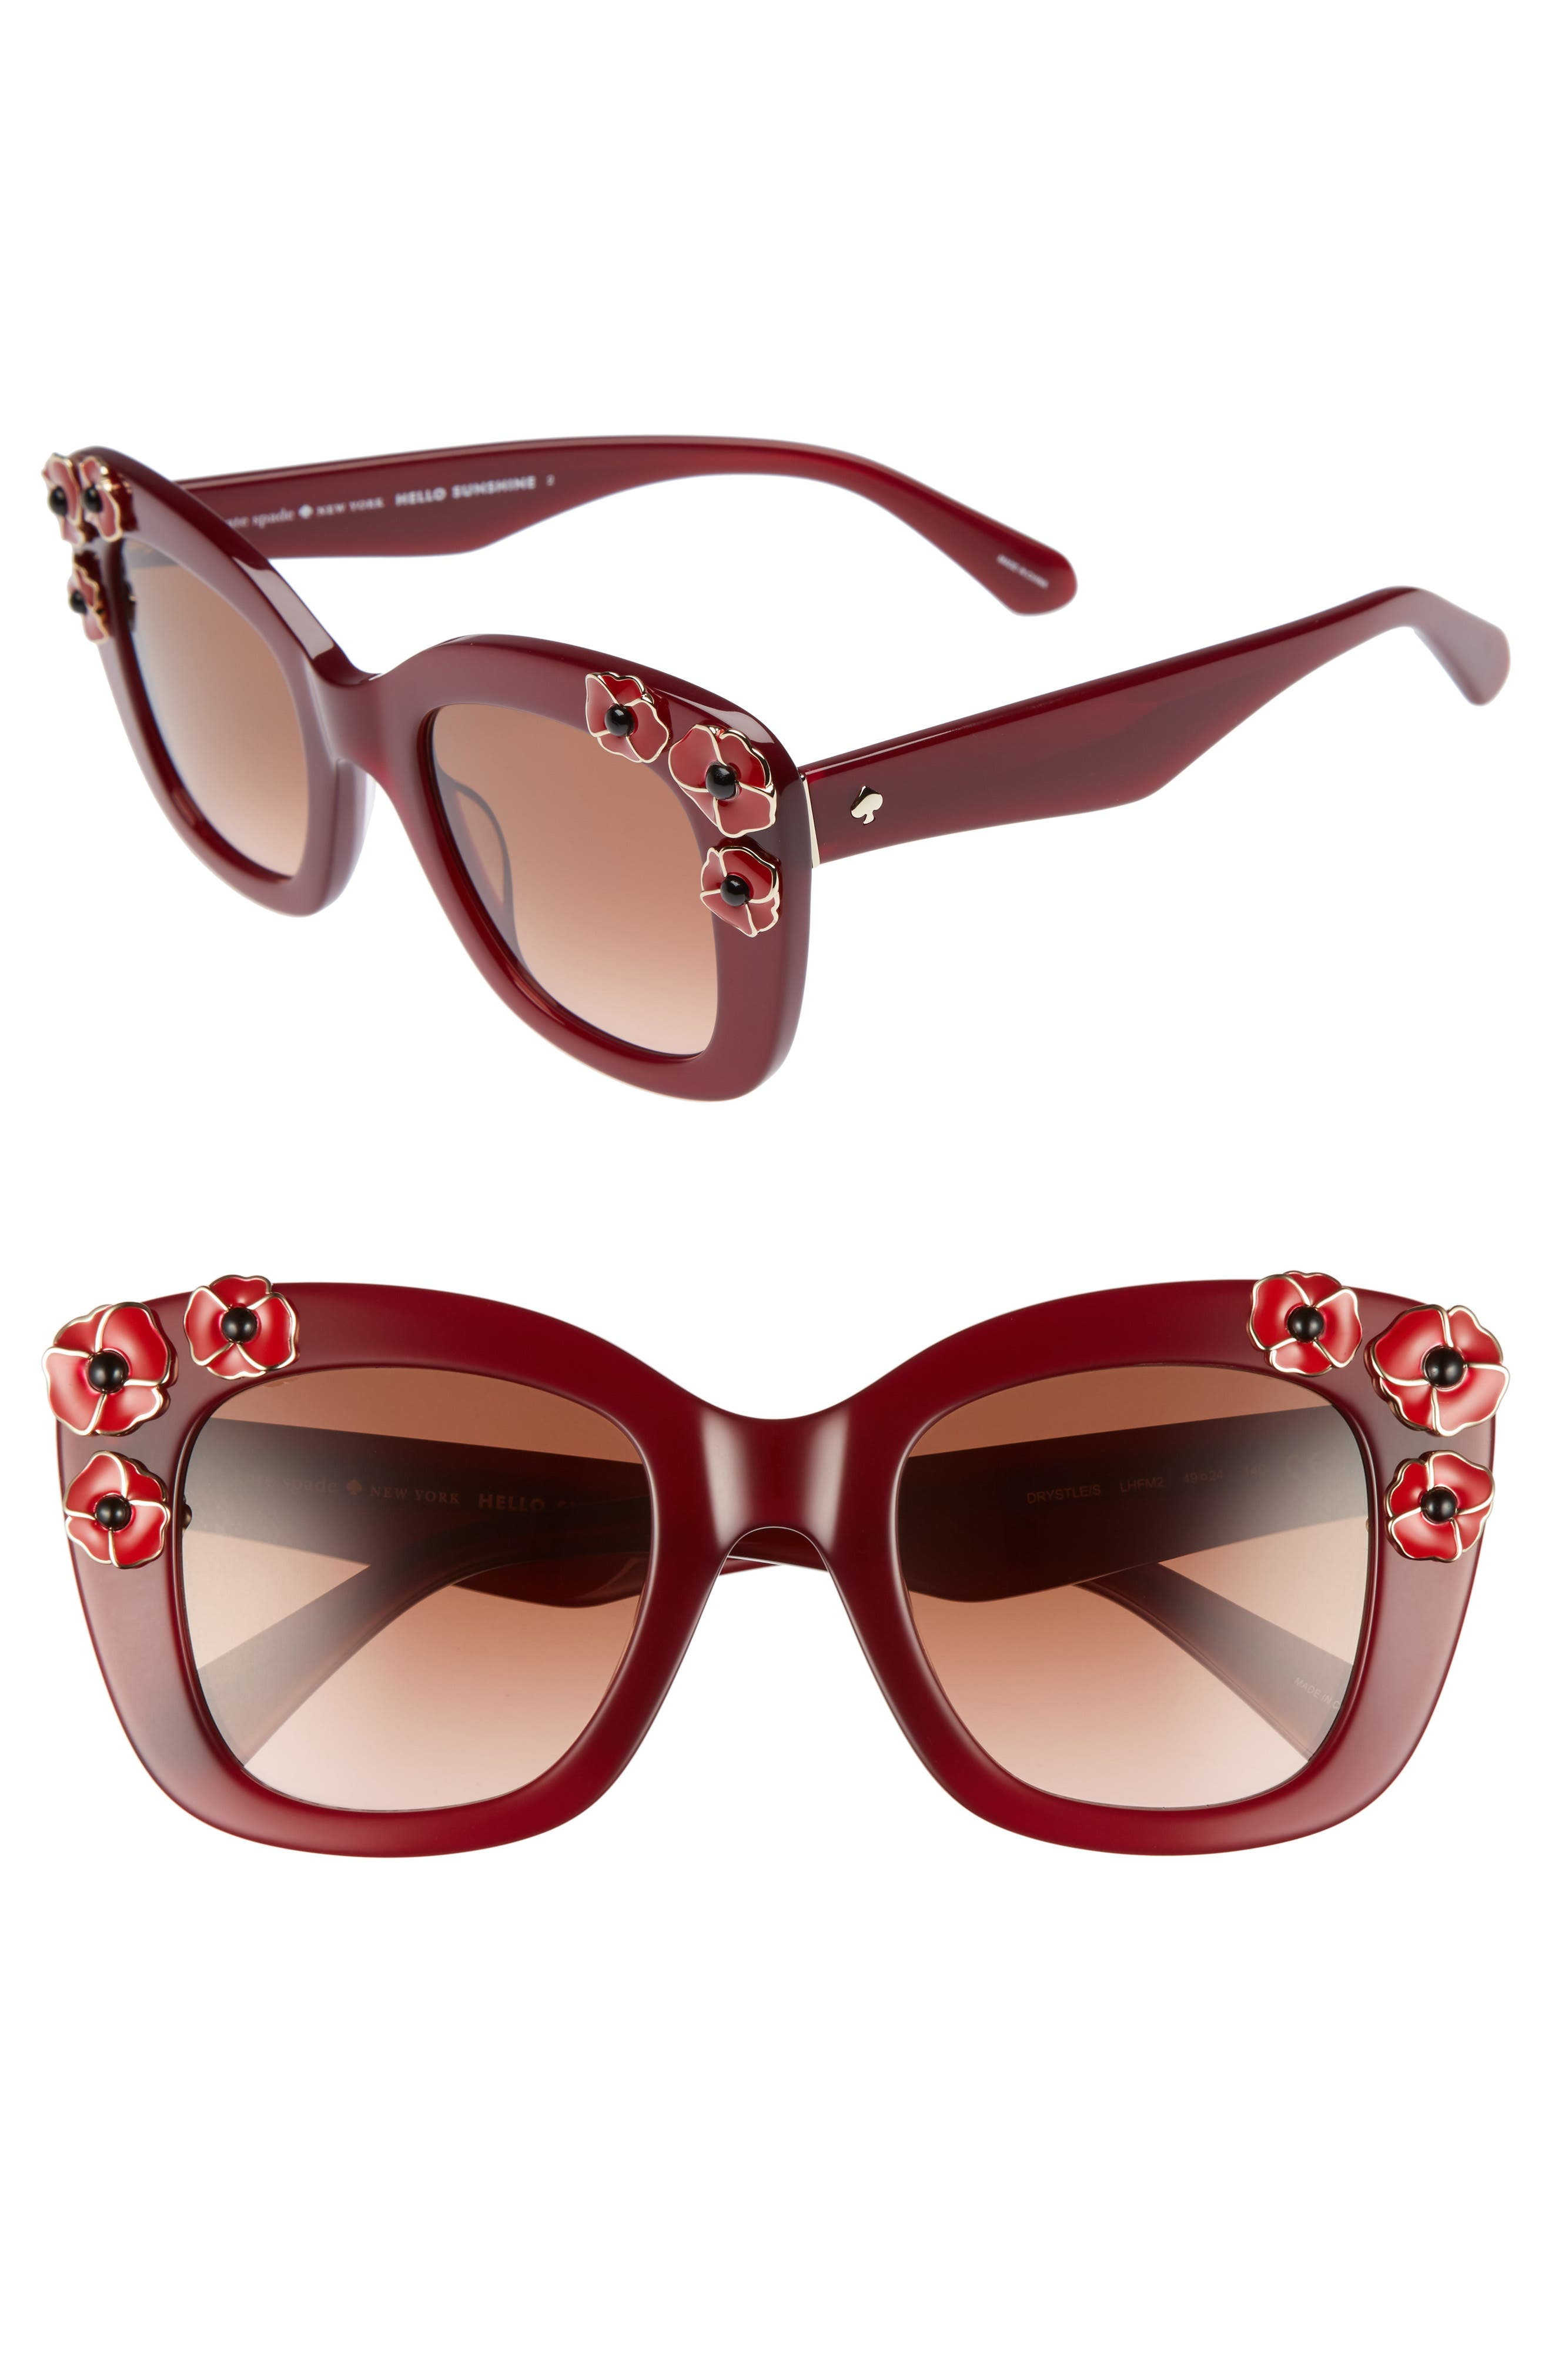 kate spade drystle 49mm floral embellished square sunglasses,                             Main thumbnail 2, color,